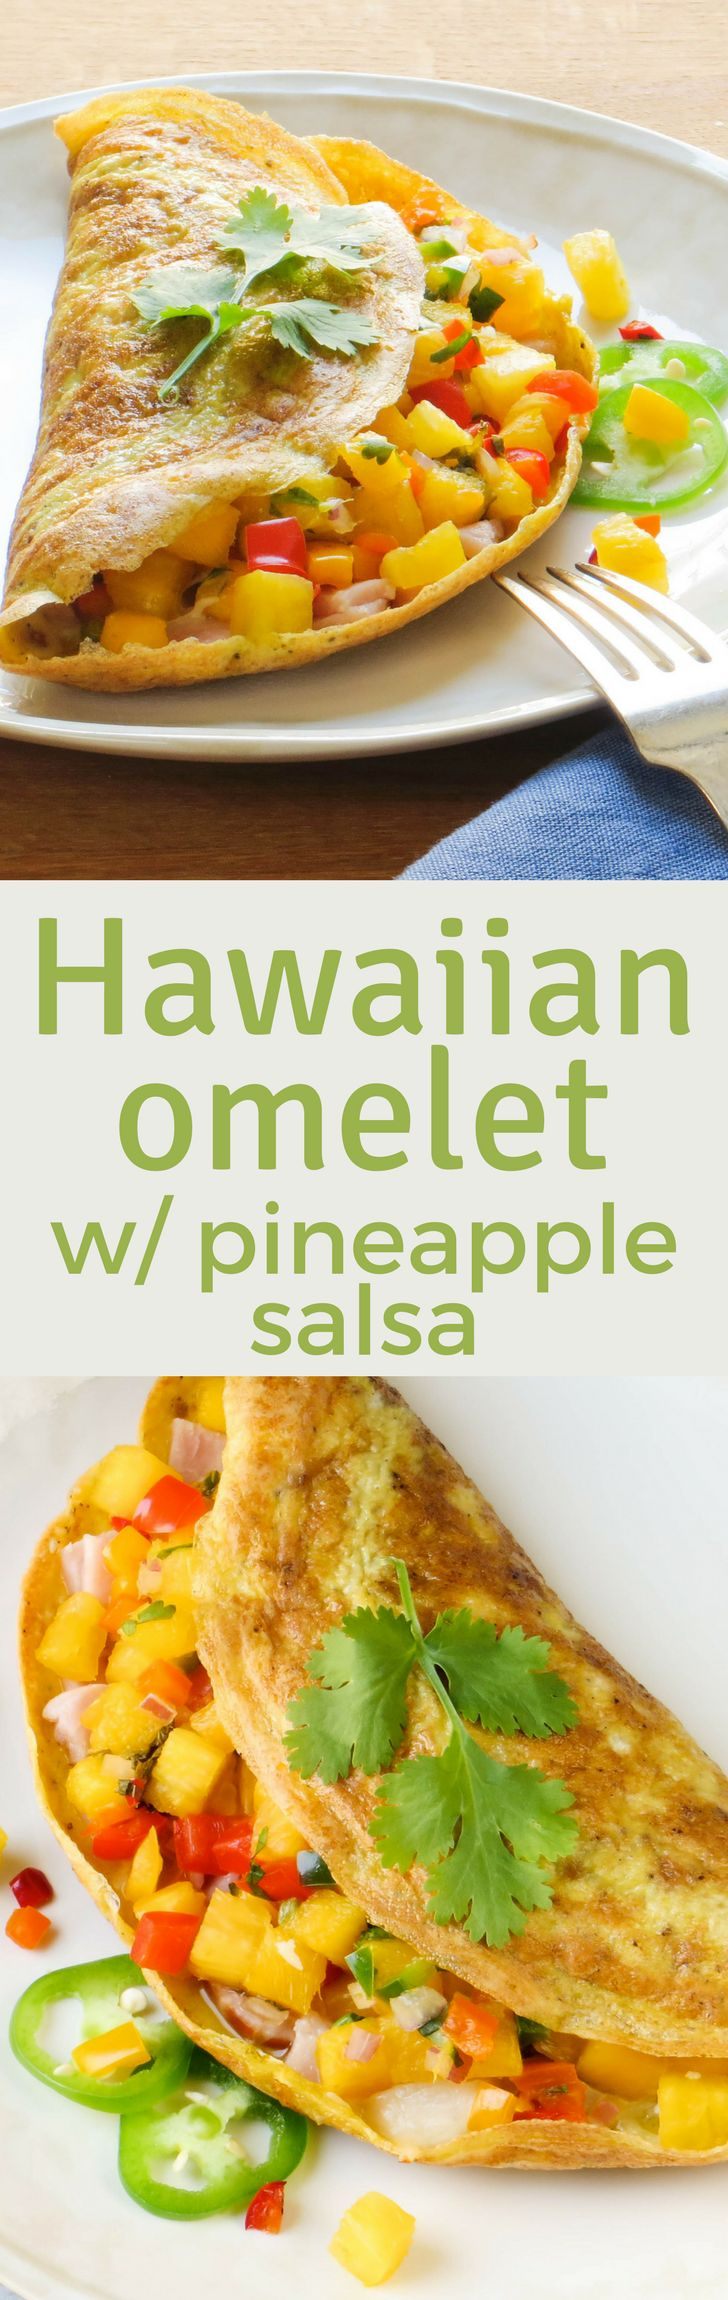 Need a healthy, light breakfast option? This Hawaiian Omelet recipe is loaded with ham, cheese and pineapple mango salsa for a tropical flavor. A delicious, high protein, low-carb alternative to yogurt and granola. #eggs #ham #canadianbacon #mozzarella #partskimmozzarella #breakfast #brunch #healthybreakfast #lowcarb #highproteinbreakfast #highprotein #pineapple #mango #salsa #fruitsalsa #tropicalfruitsalsa #omelettes #omelet #fastbreakfast